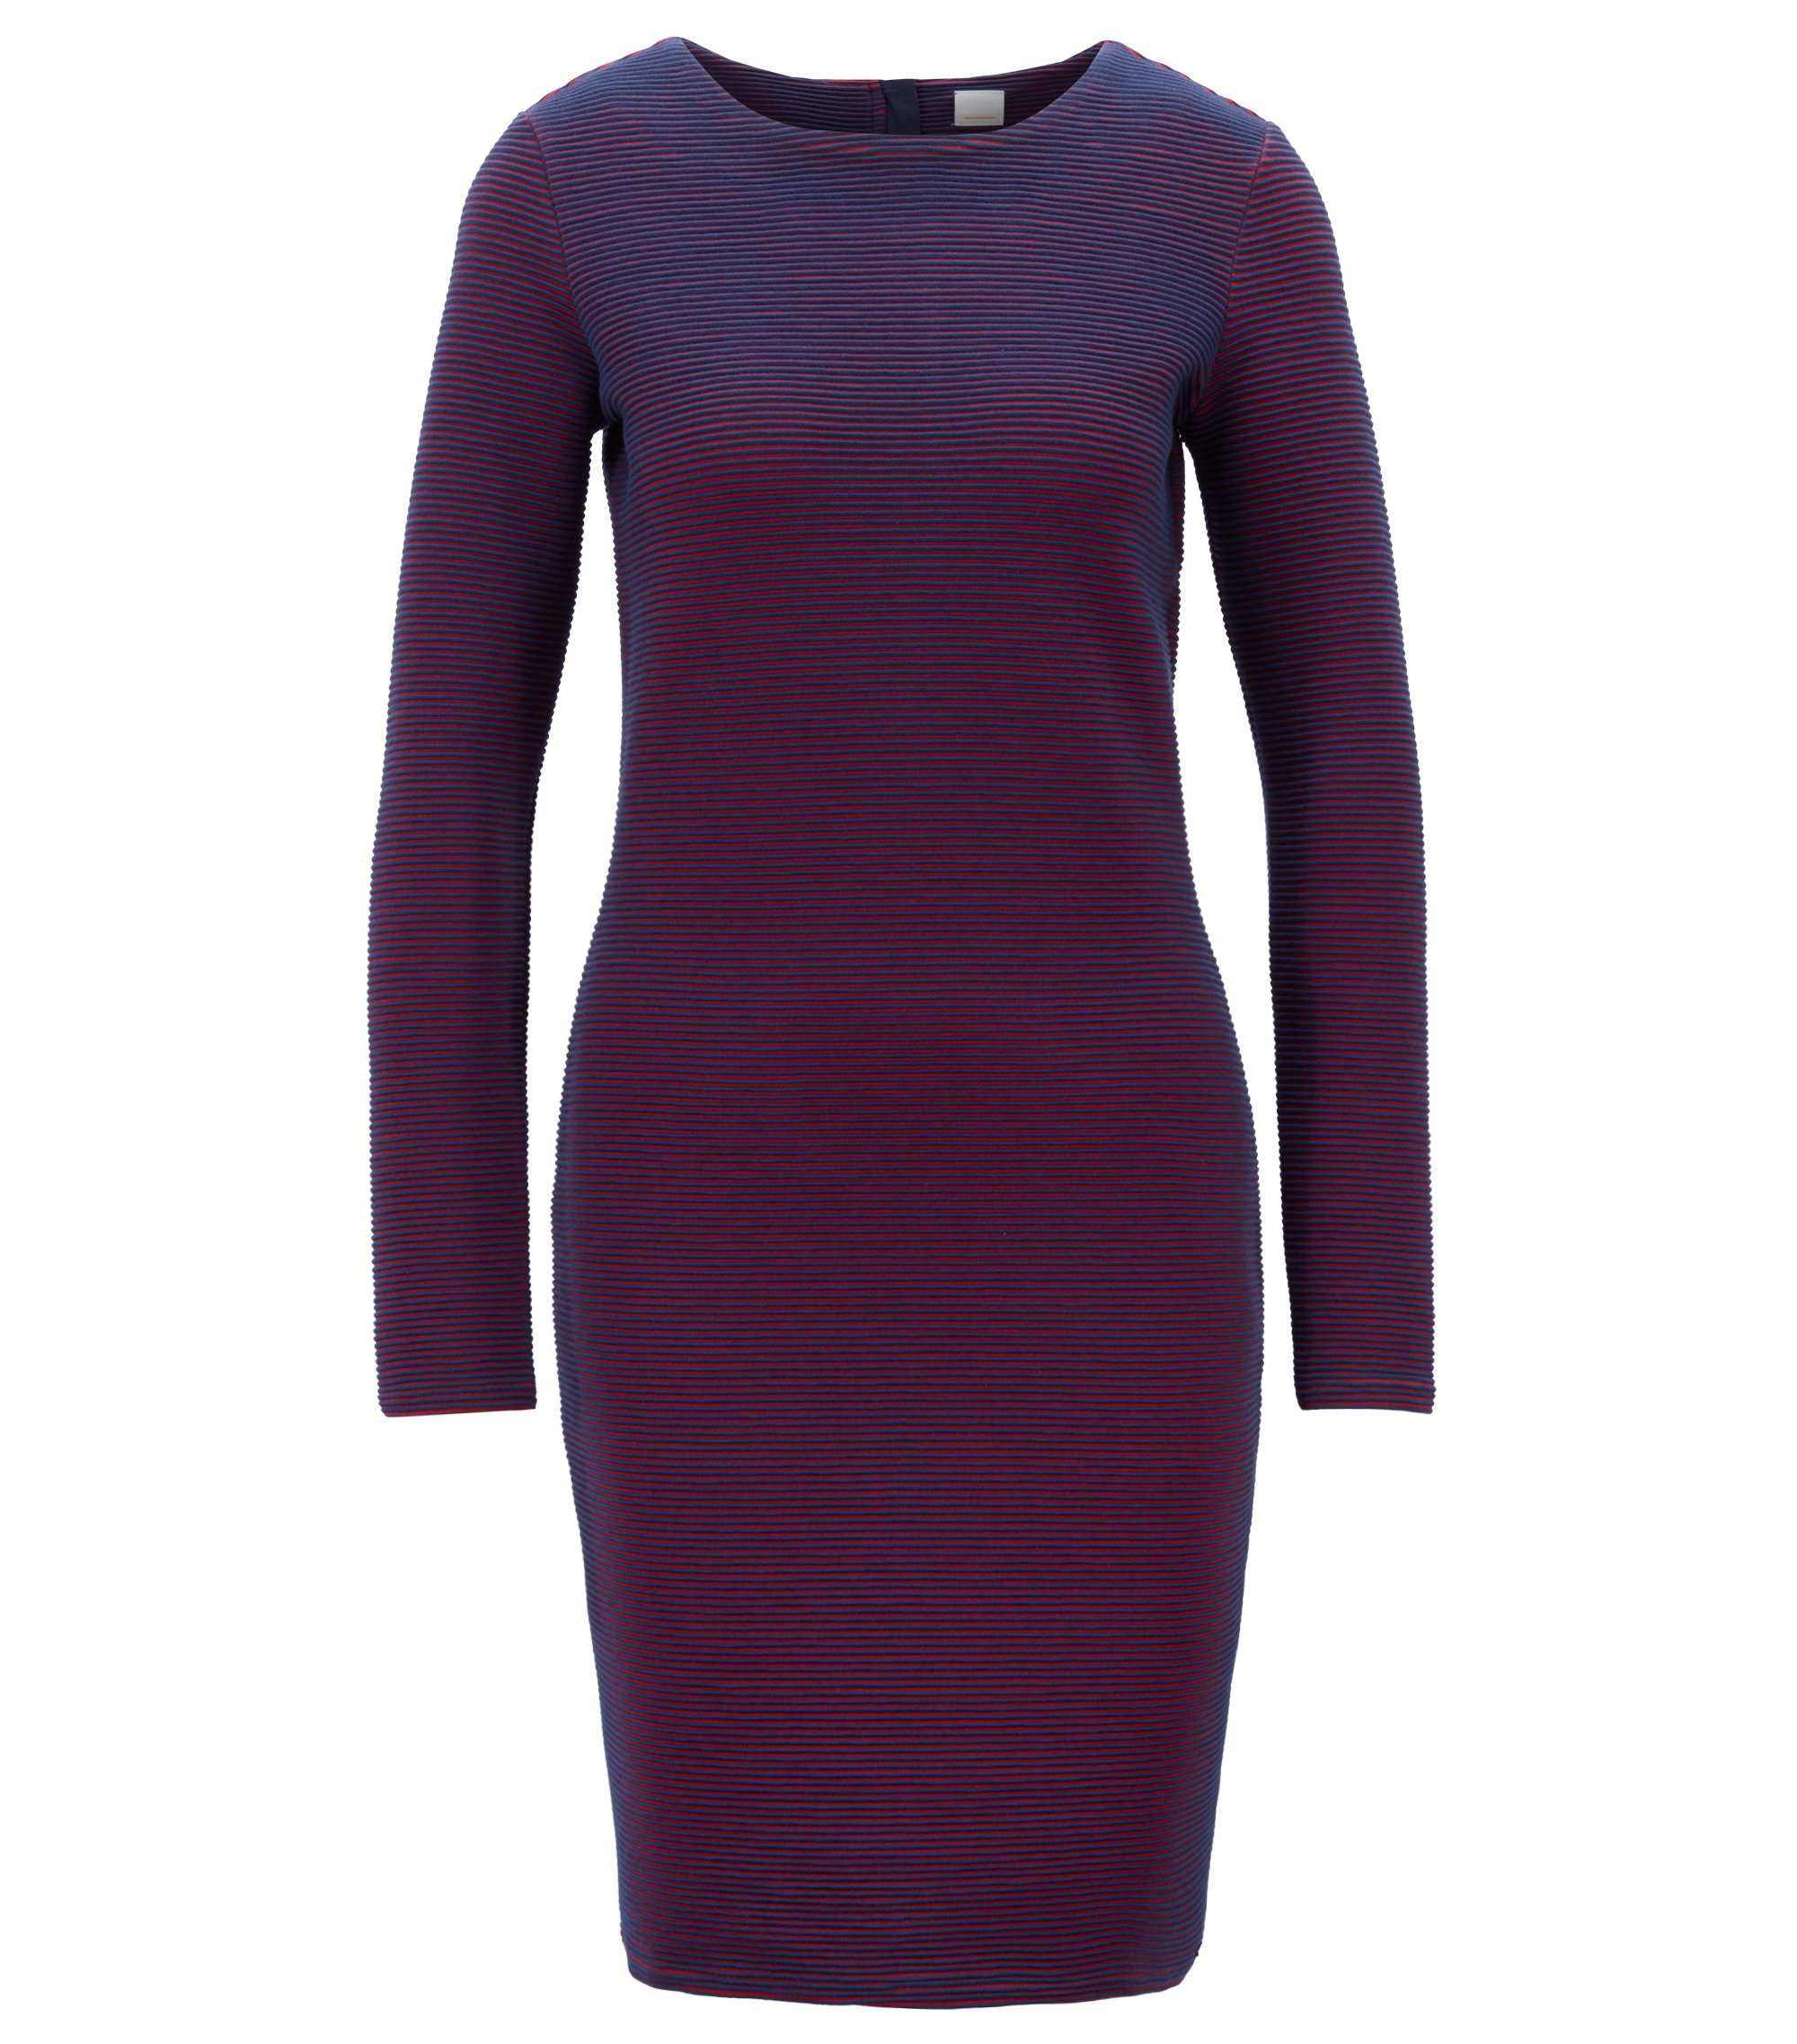 Long-sleeved bodycon dress in striped ottoman jersey, Patterned